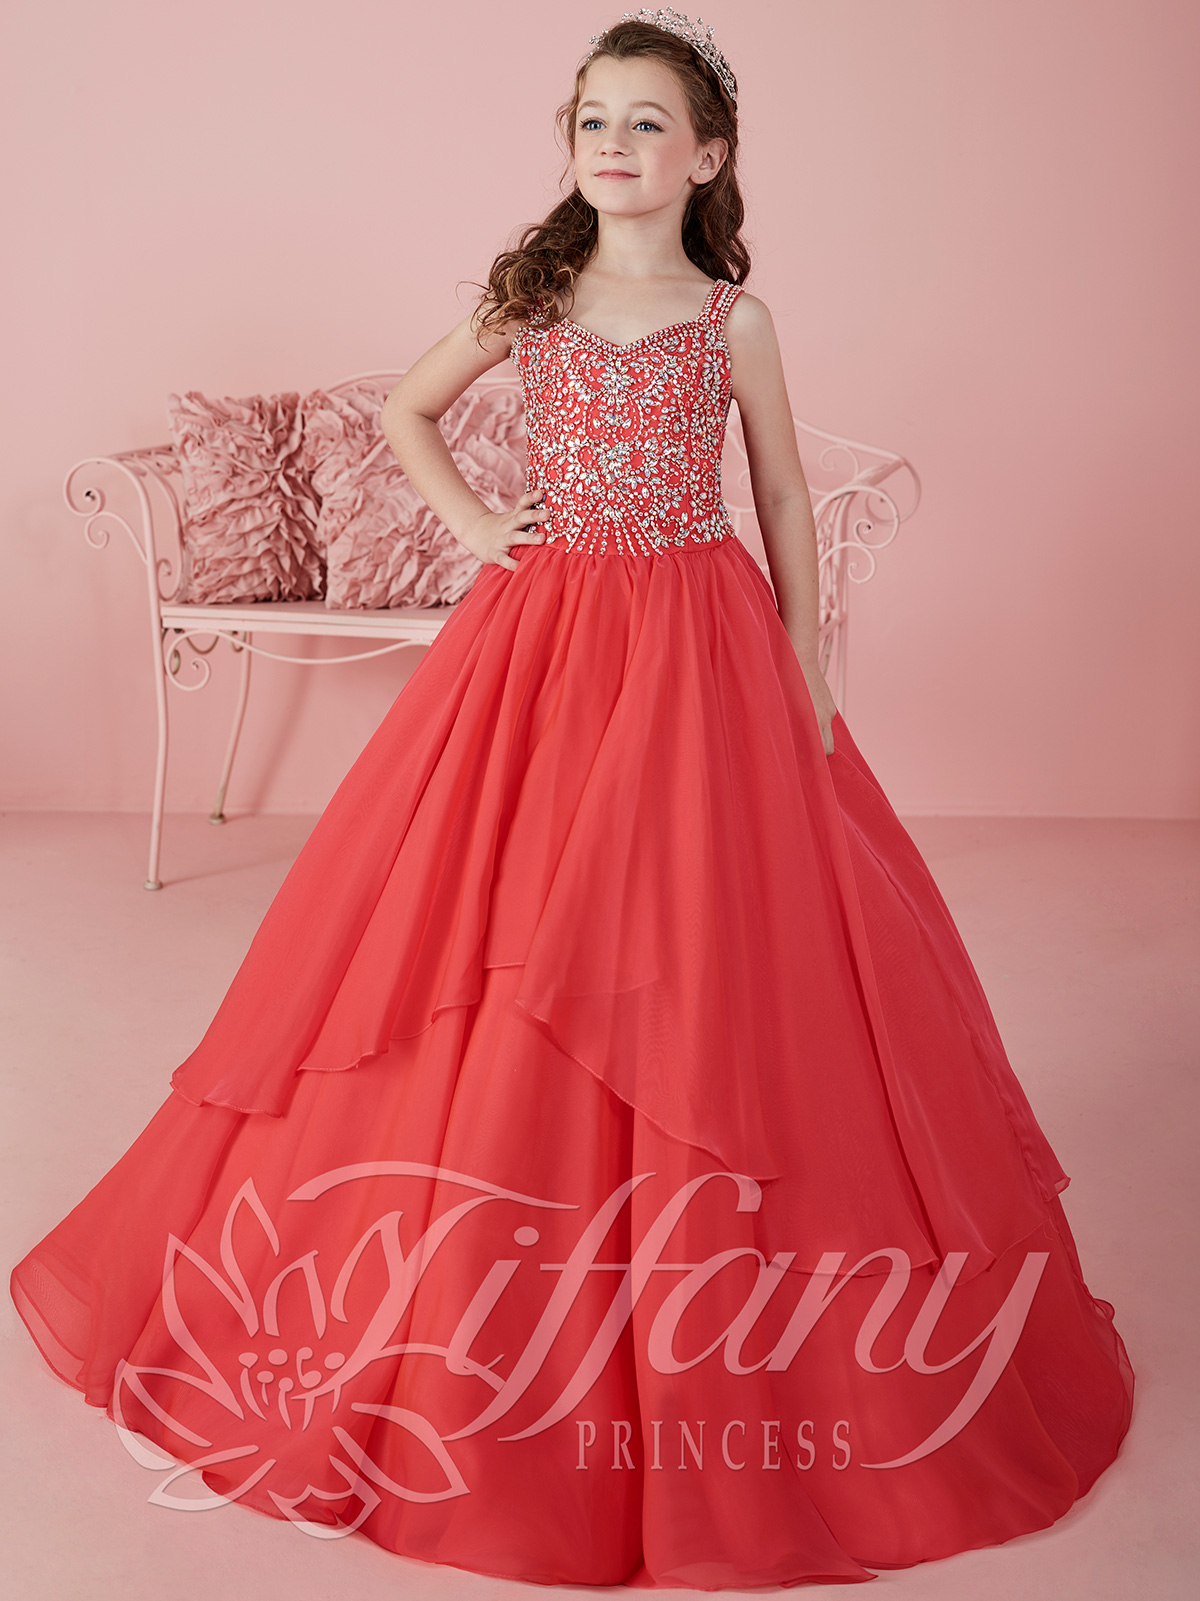 Tiffany Princess 13461 Sweetheart Beaded Ball Gown Pageant ...